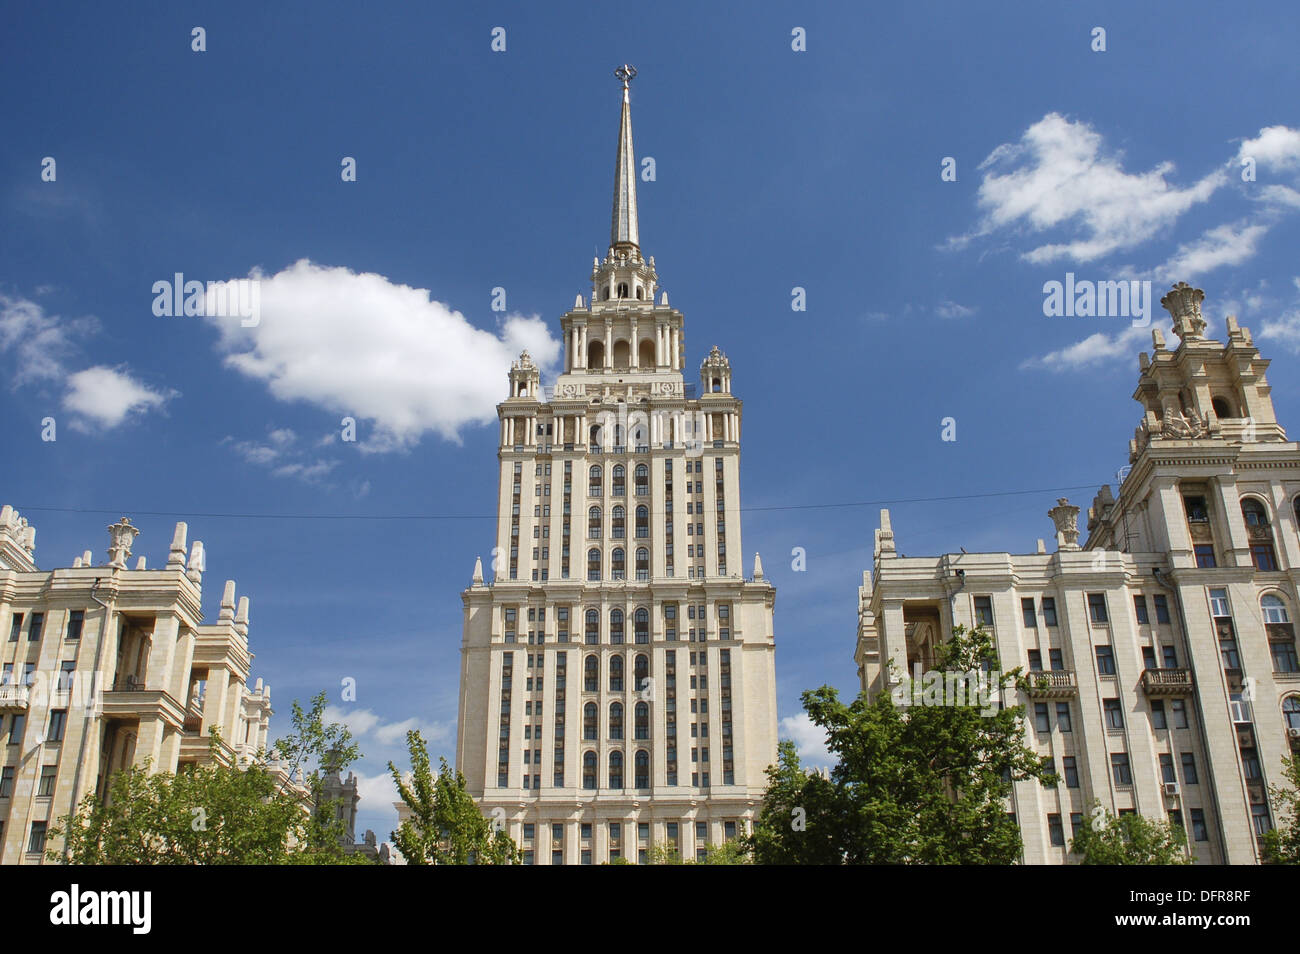 Stalinist architecture, Ukraina Hotel, Moscow, Russia - Stock Image